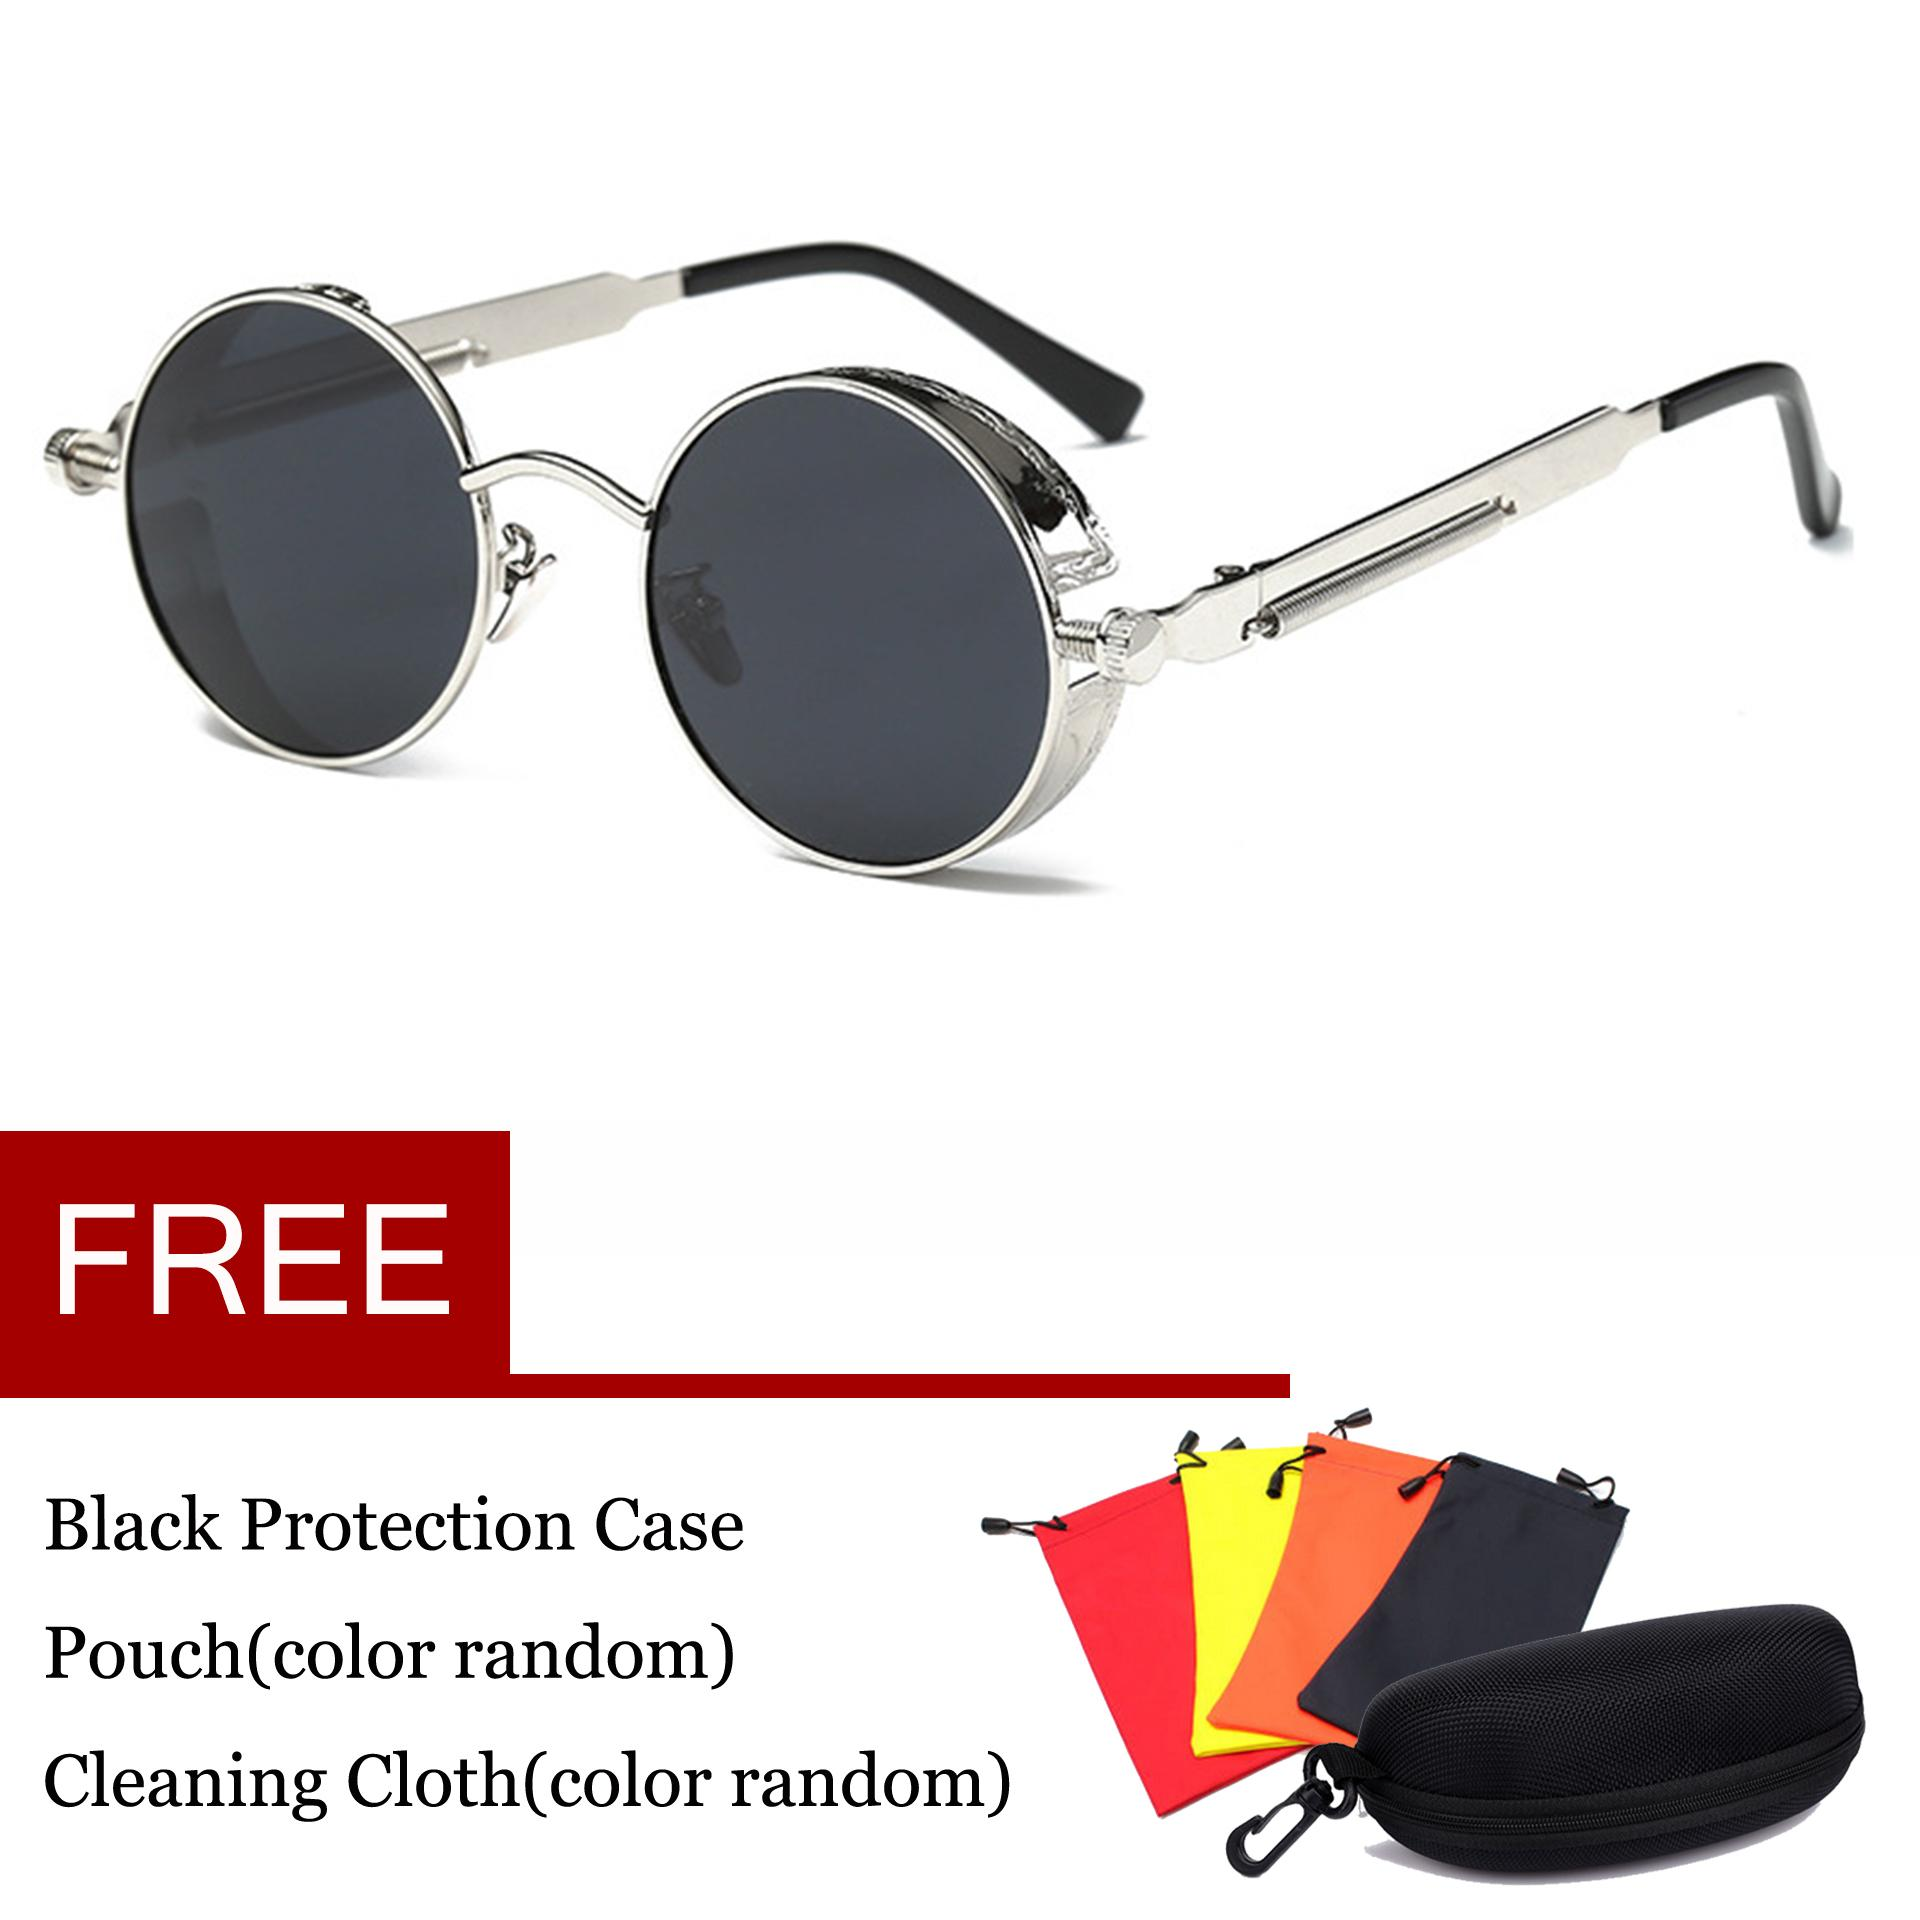 3f80687e89 Vintage Polarized Steampunk Sunglasses Fashion Round Mirrored Retro Eyewear  Silver Grey - intl